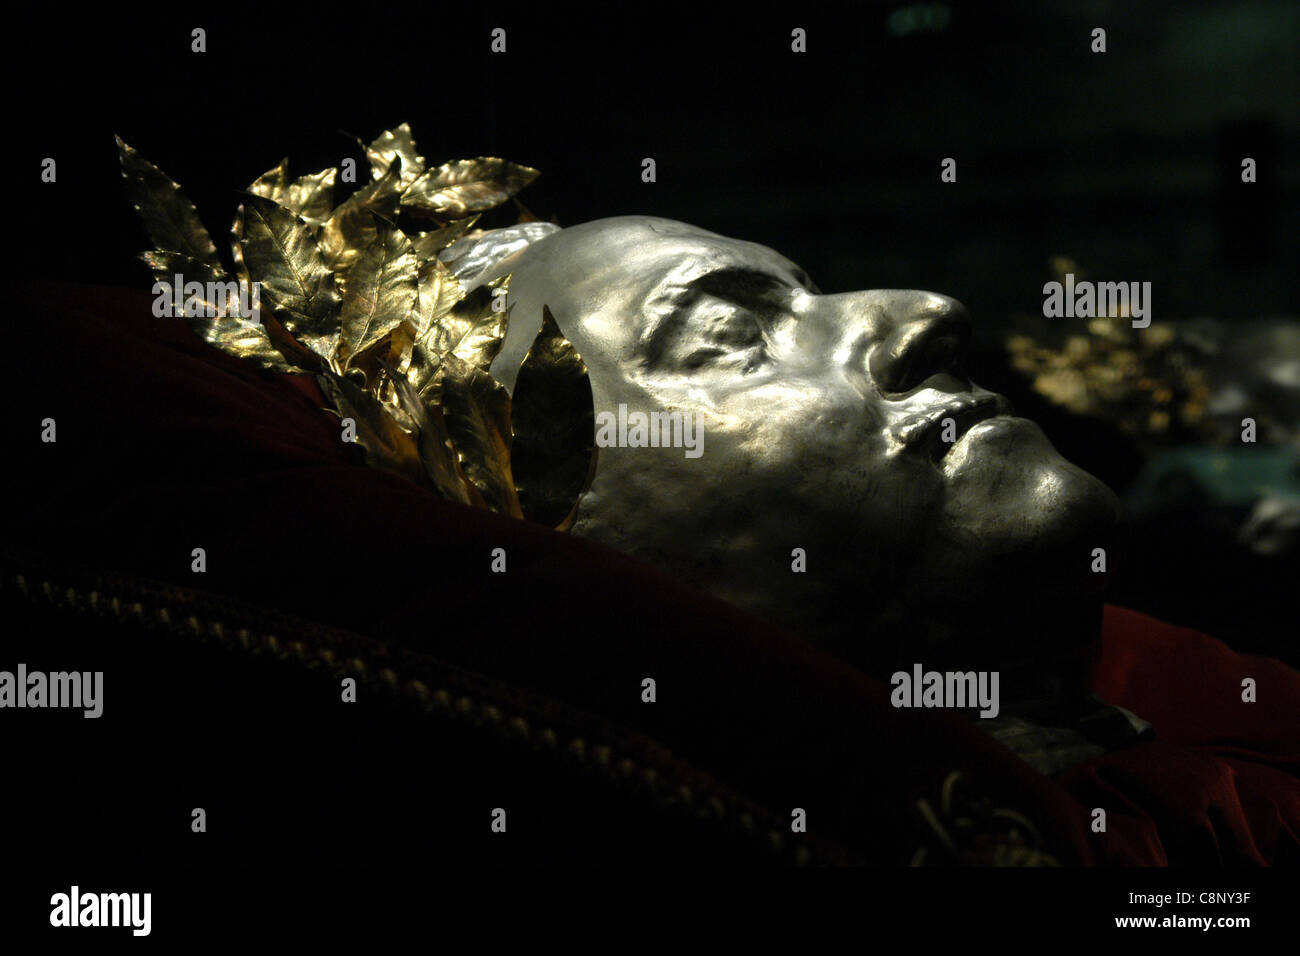 Death mask of Russian tsar Peter the Great seen at the State Historical Museum in Moscow, Russia. - Stock Image